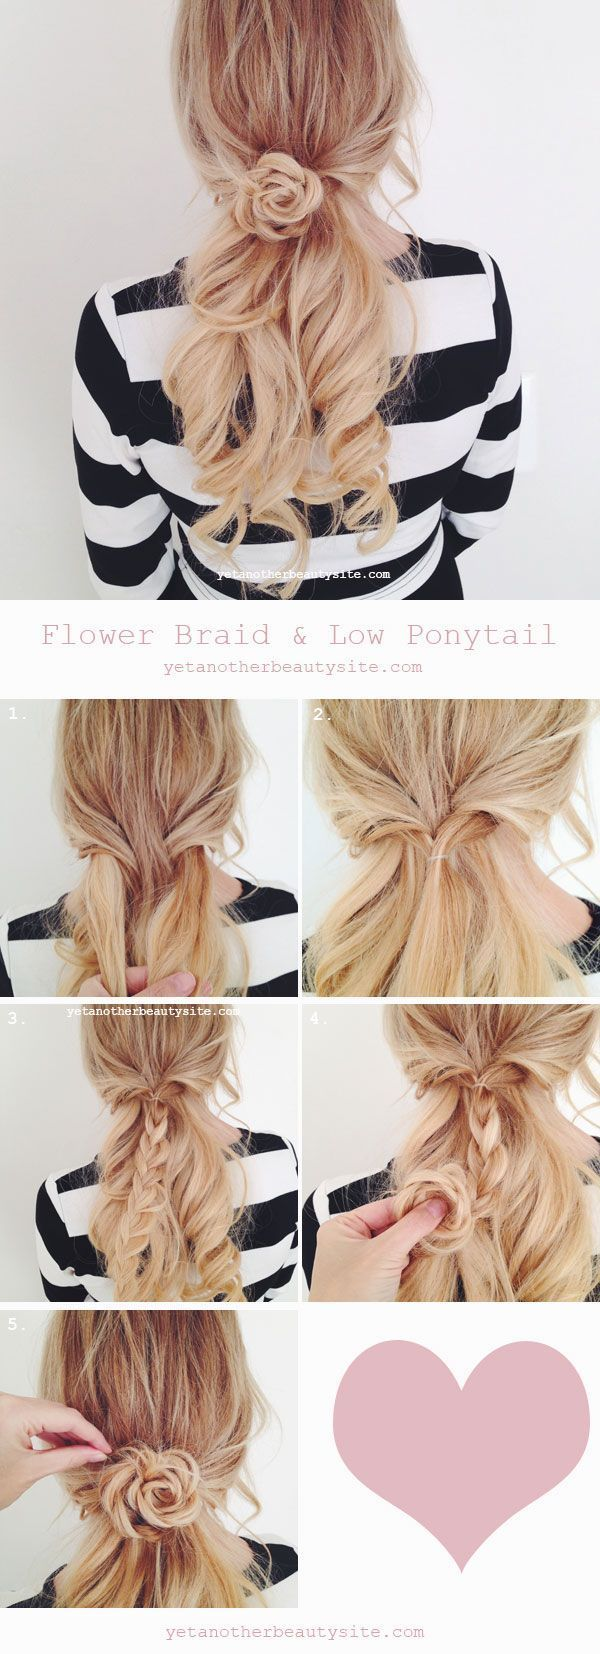 -Wendy- For the hair handicapped #23- Flower braid and low pony. For medium to long hair lengths.: